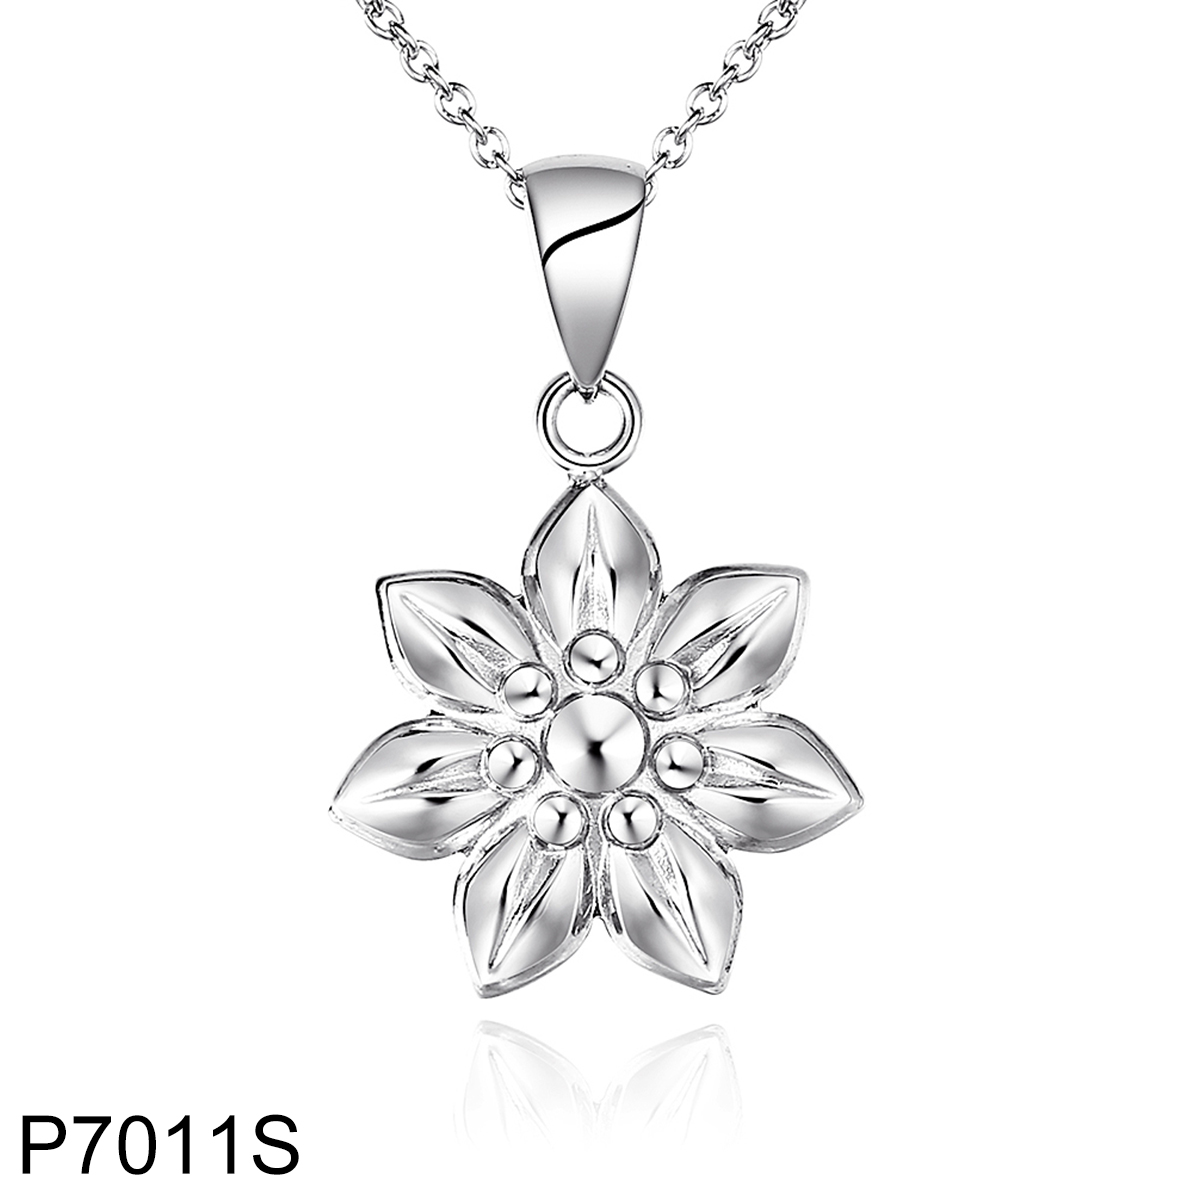 P7011S sliver flower stainless steel on chain pendant necklace